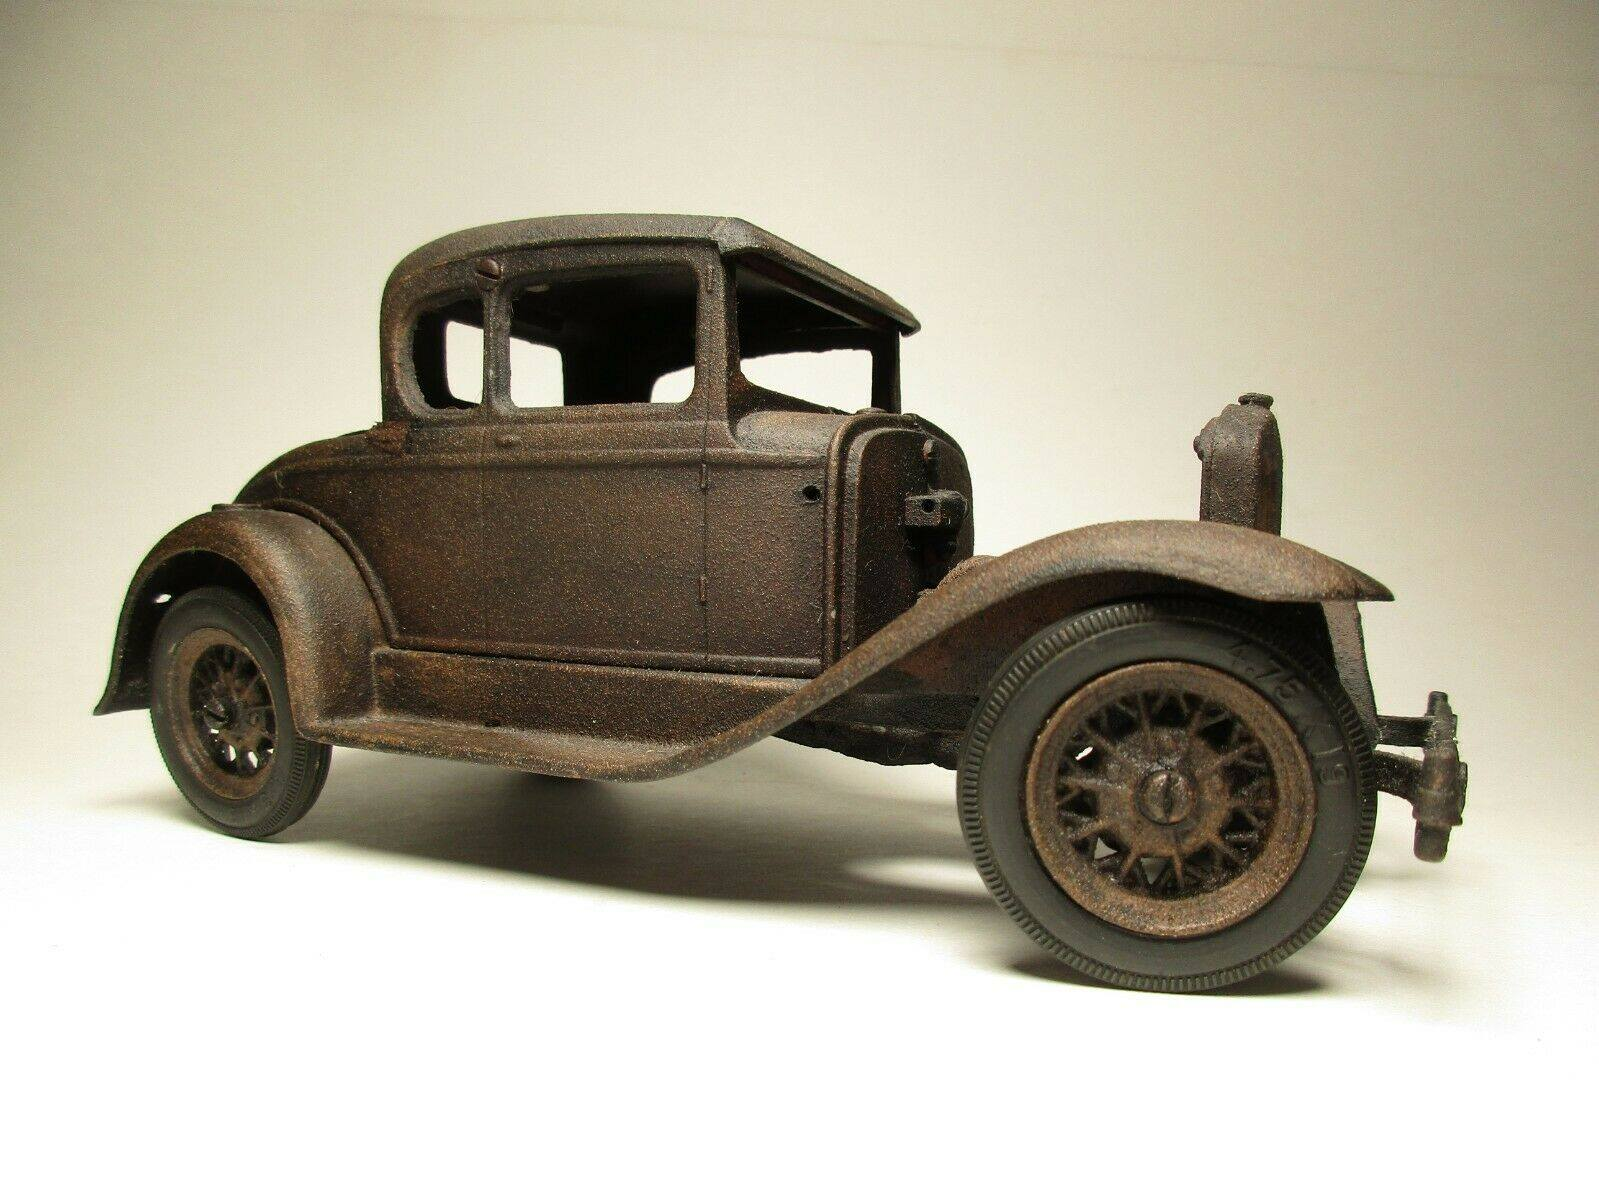 Vintage-Hubley-1932-Ford-Model-A-Coupe-and-Engine---Rusty-Weathered-Barn-Find-8